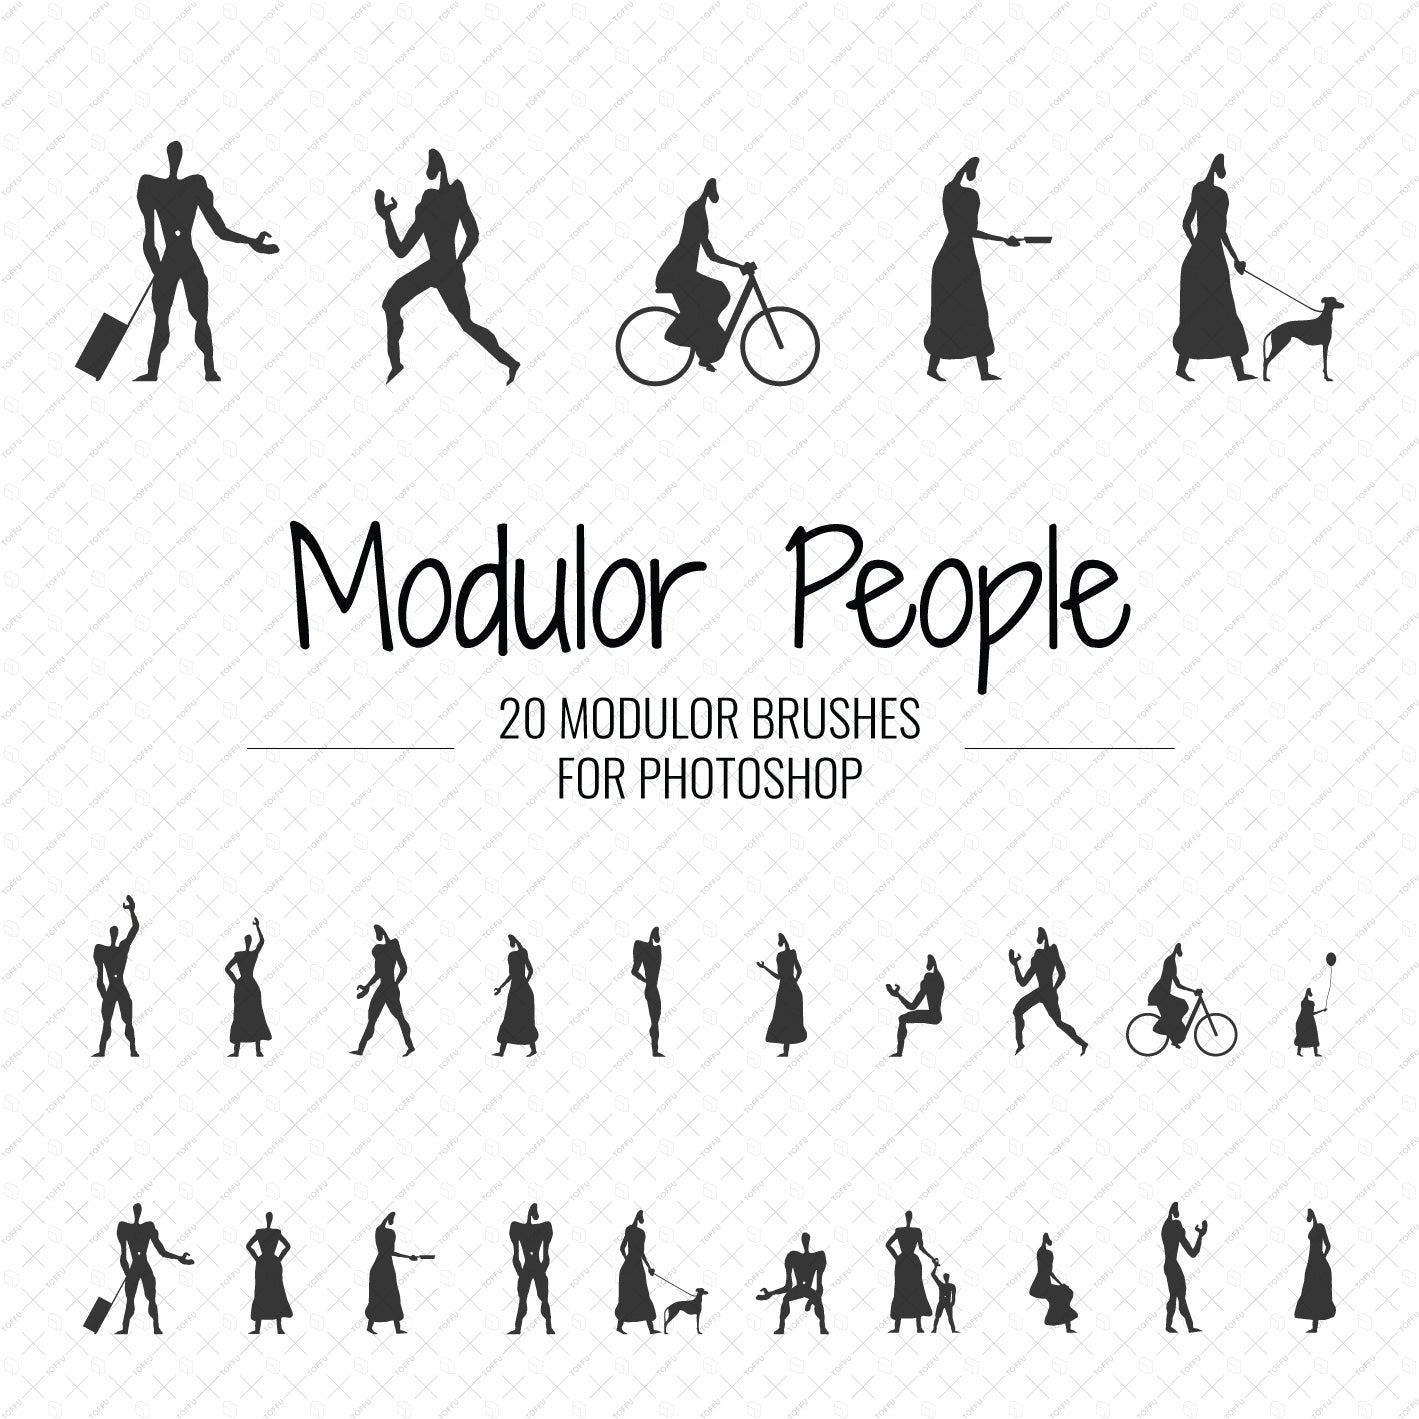 Brush Modulor People - Toffu Co